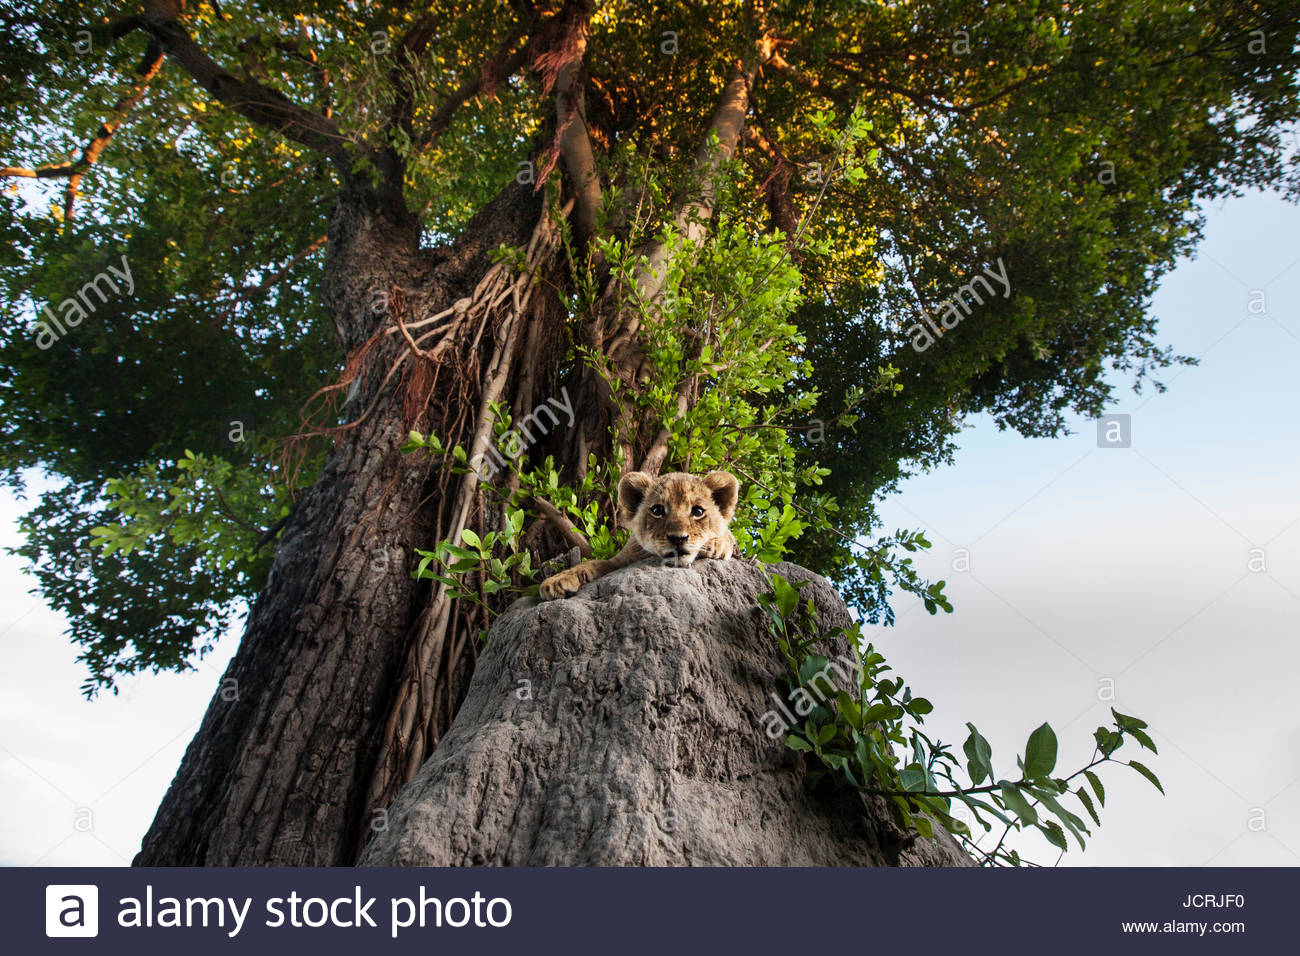 A lion cub, Panthera leo, relaxing on an ant hill under a large tree. - Stock Image